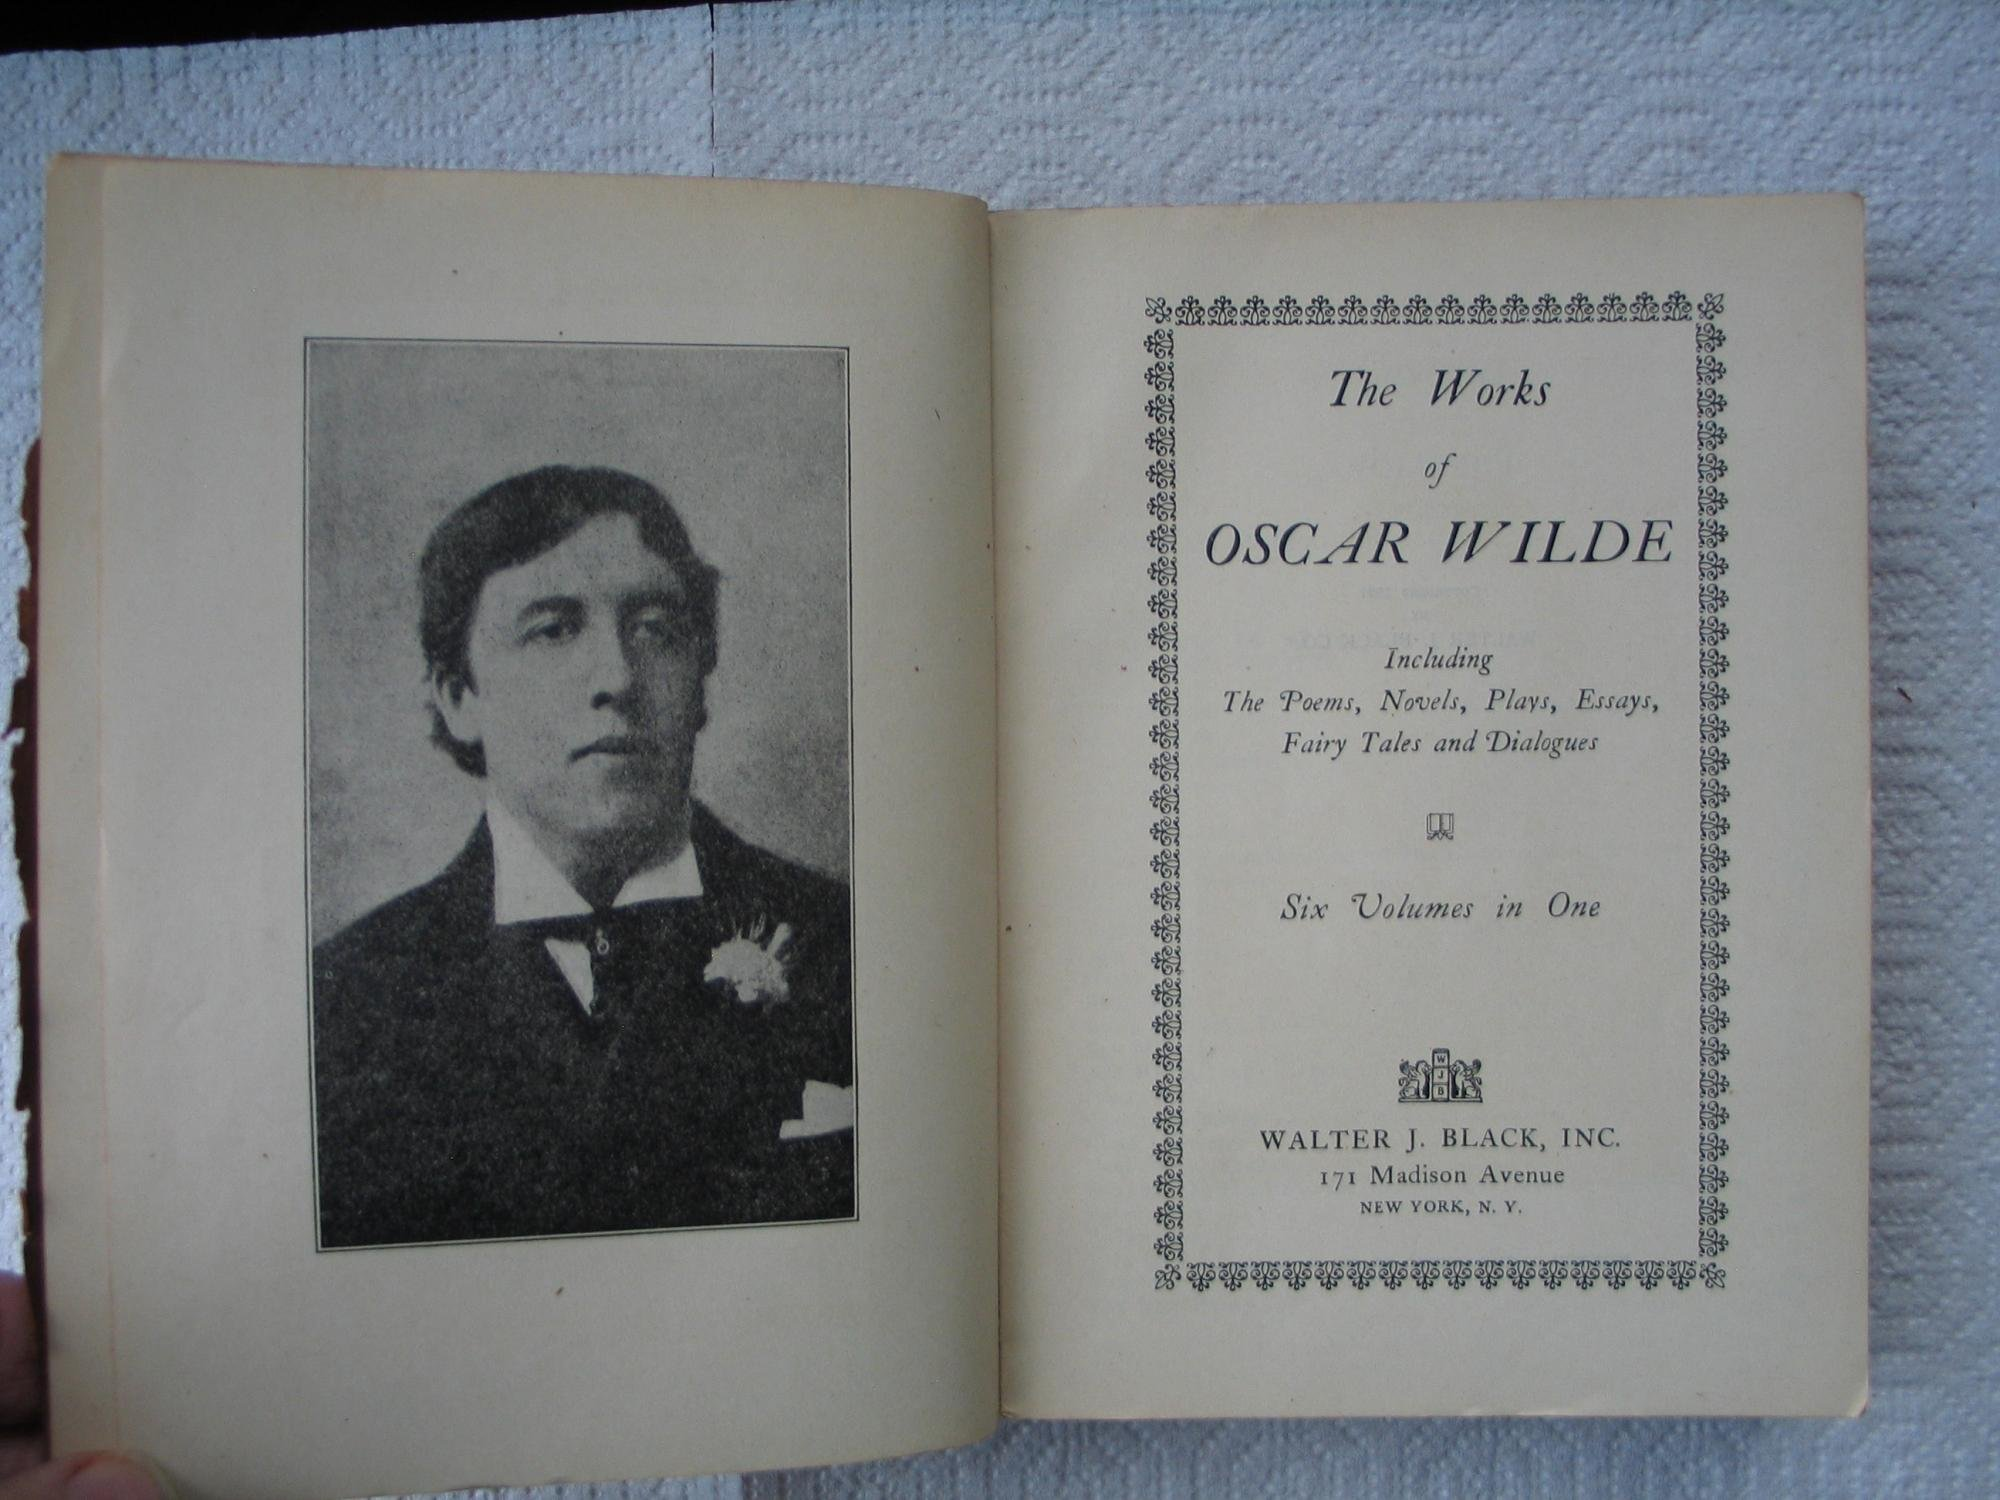 the works of oscar wilde including the poems novels plays the works of oscar wilde including the poems novels plays essays fairy tales and dialogues six volumes in one oscar wilde com books